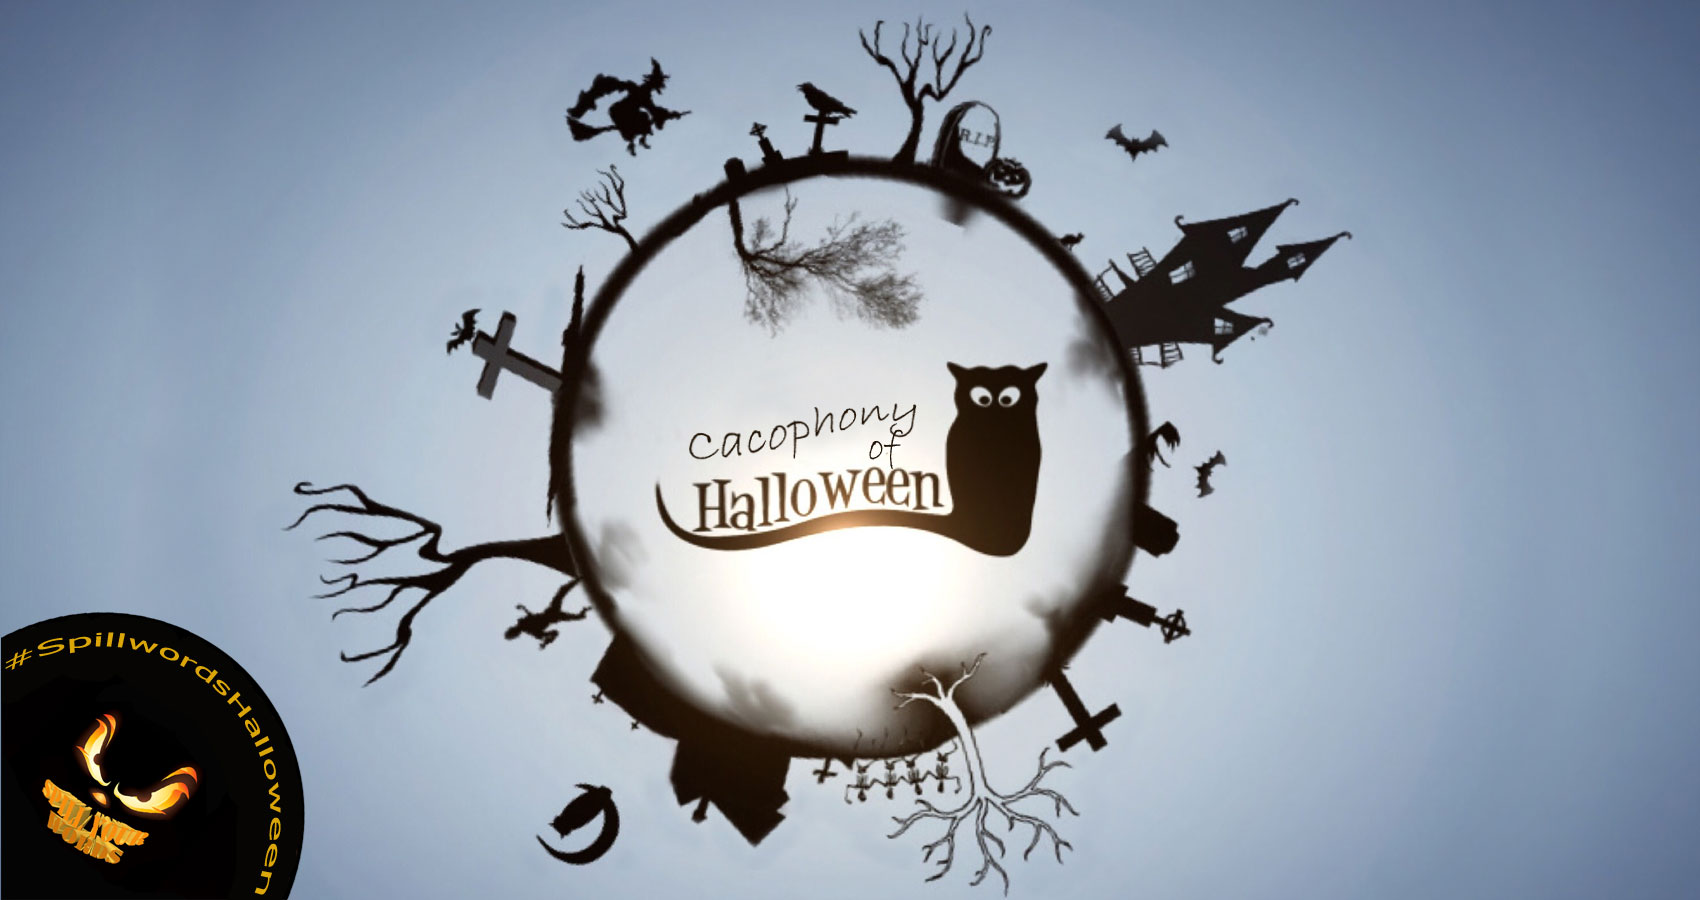 Cacophony Of Halloween by Storyteller at Spillwords.com